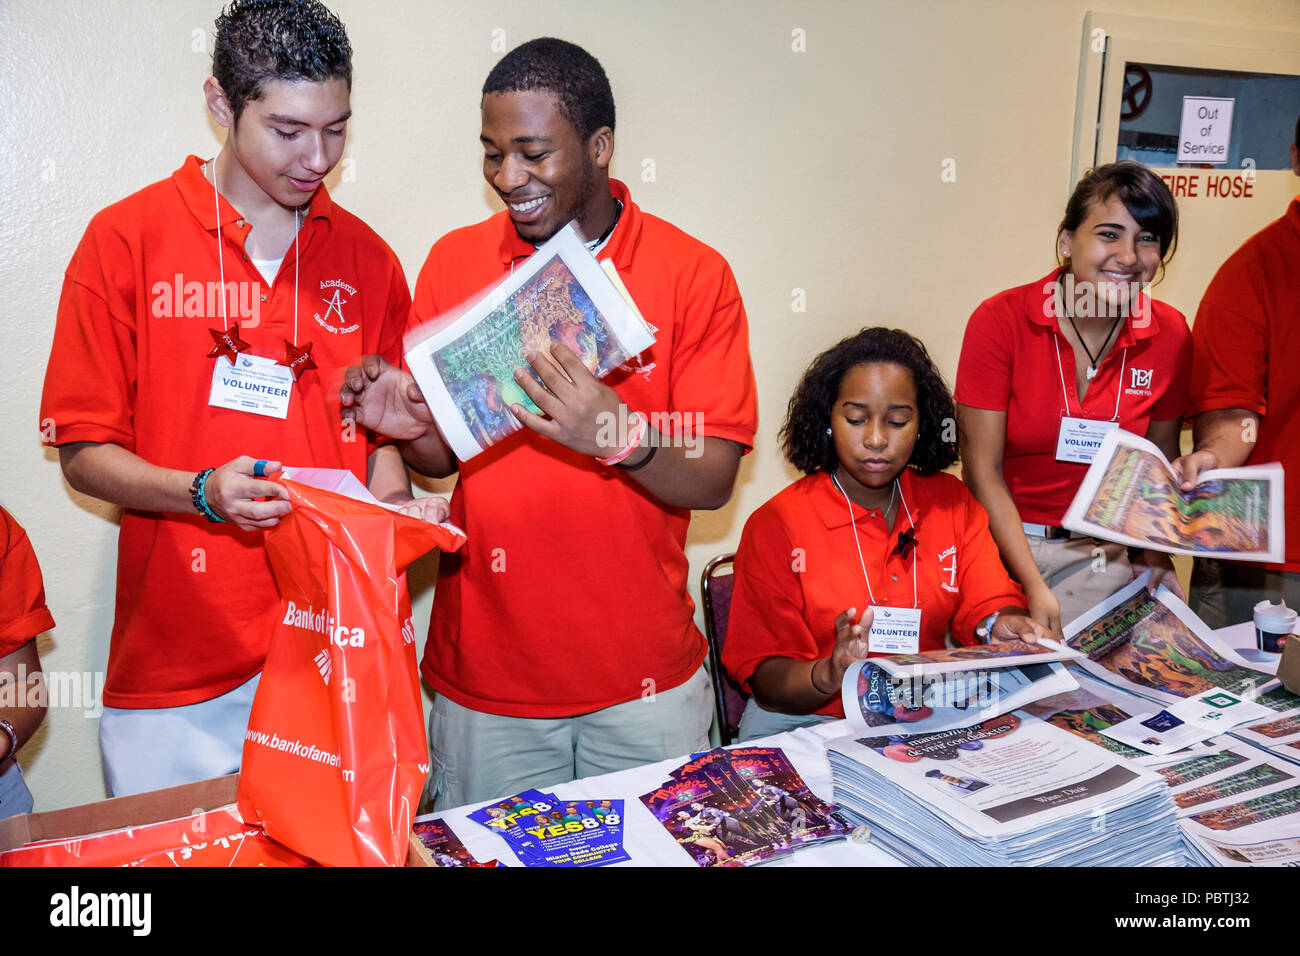 Miami Beach Miami Florida Beach Convention Center Hispanic Heritage Month Expo volunteers Black boy girl teens publications broc - Stock Image